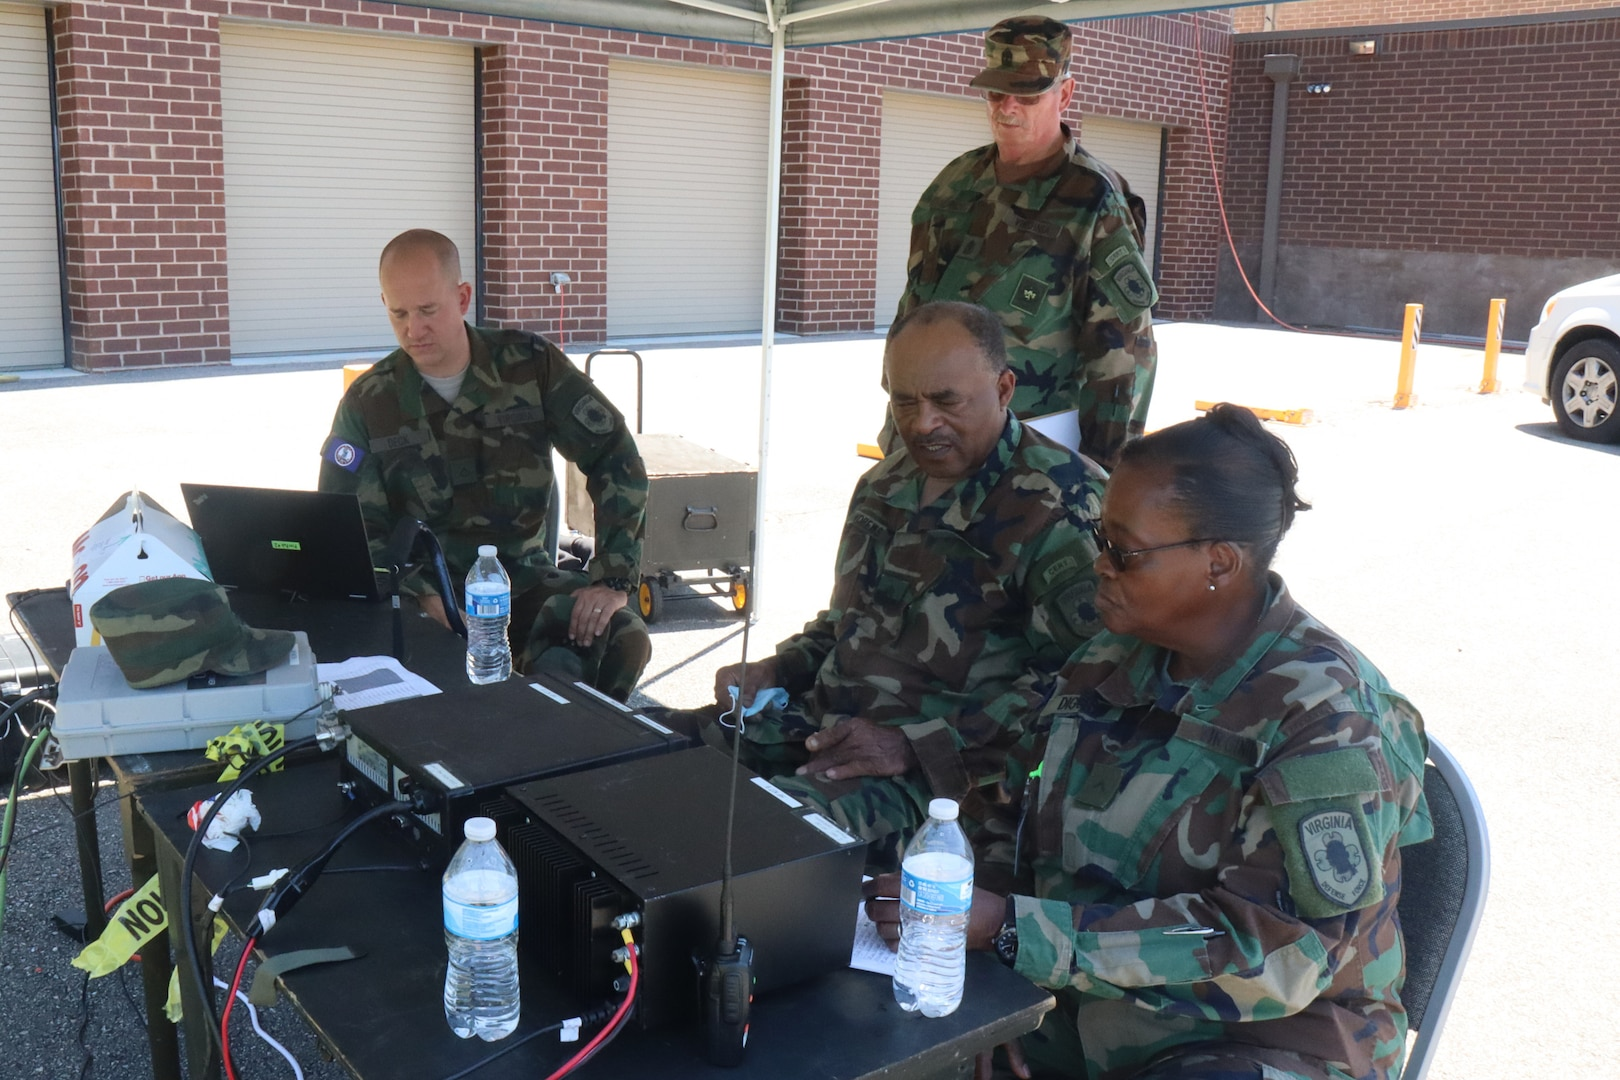 Virginia Defense Force personnel assigned to 1st Regiment provide access control at a Mobile Communication Platform June 5, 2021, in Lynchburg, Virginia.